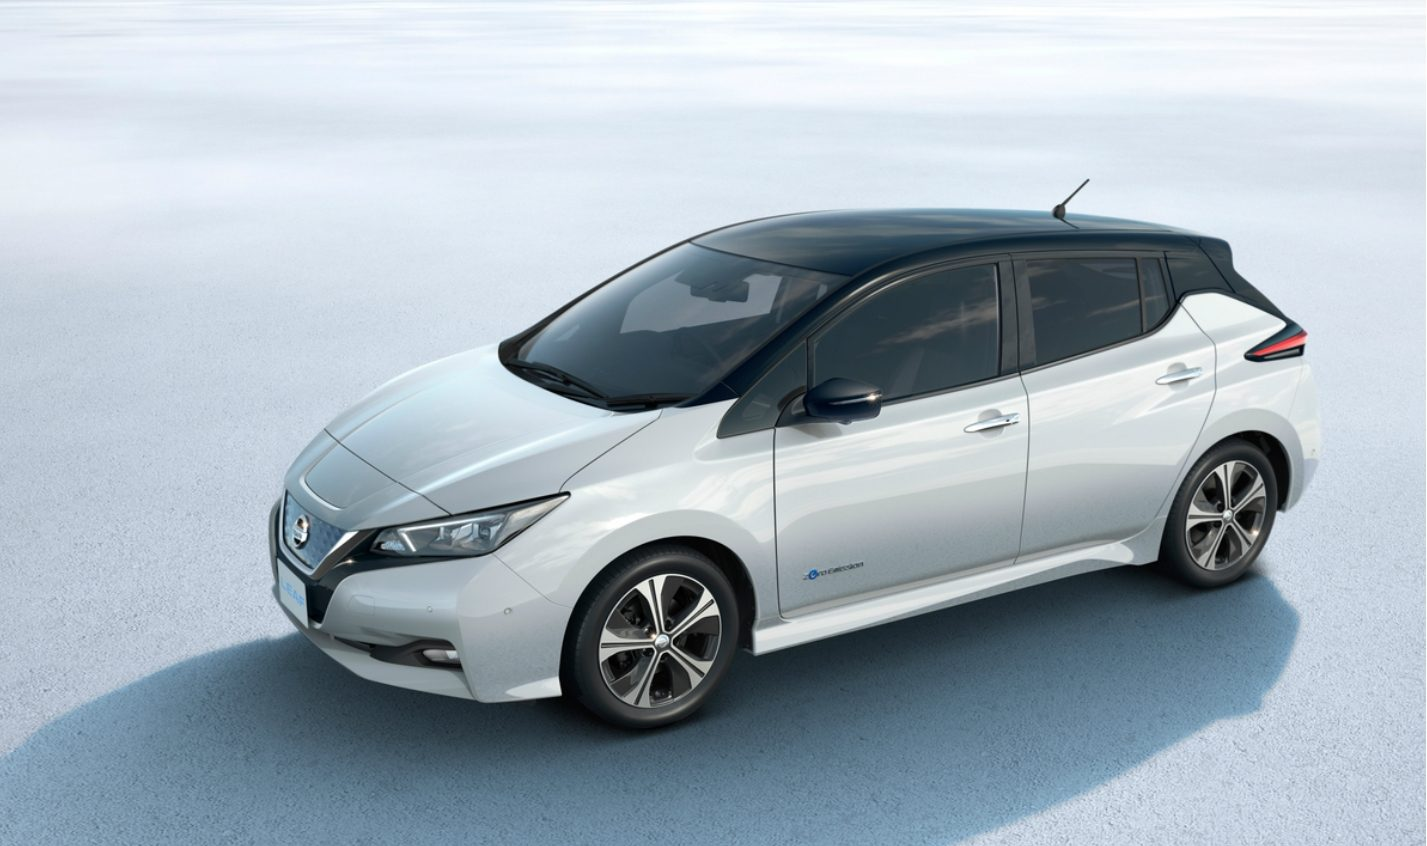 NEW NISSAN LEAF TO GO ON SALE IN 7 MARKETS IN ASIA AND OCEANIA